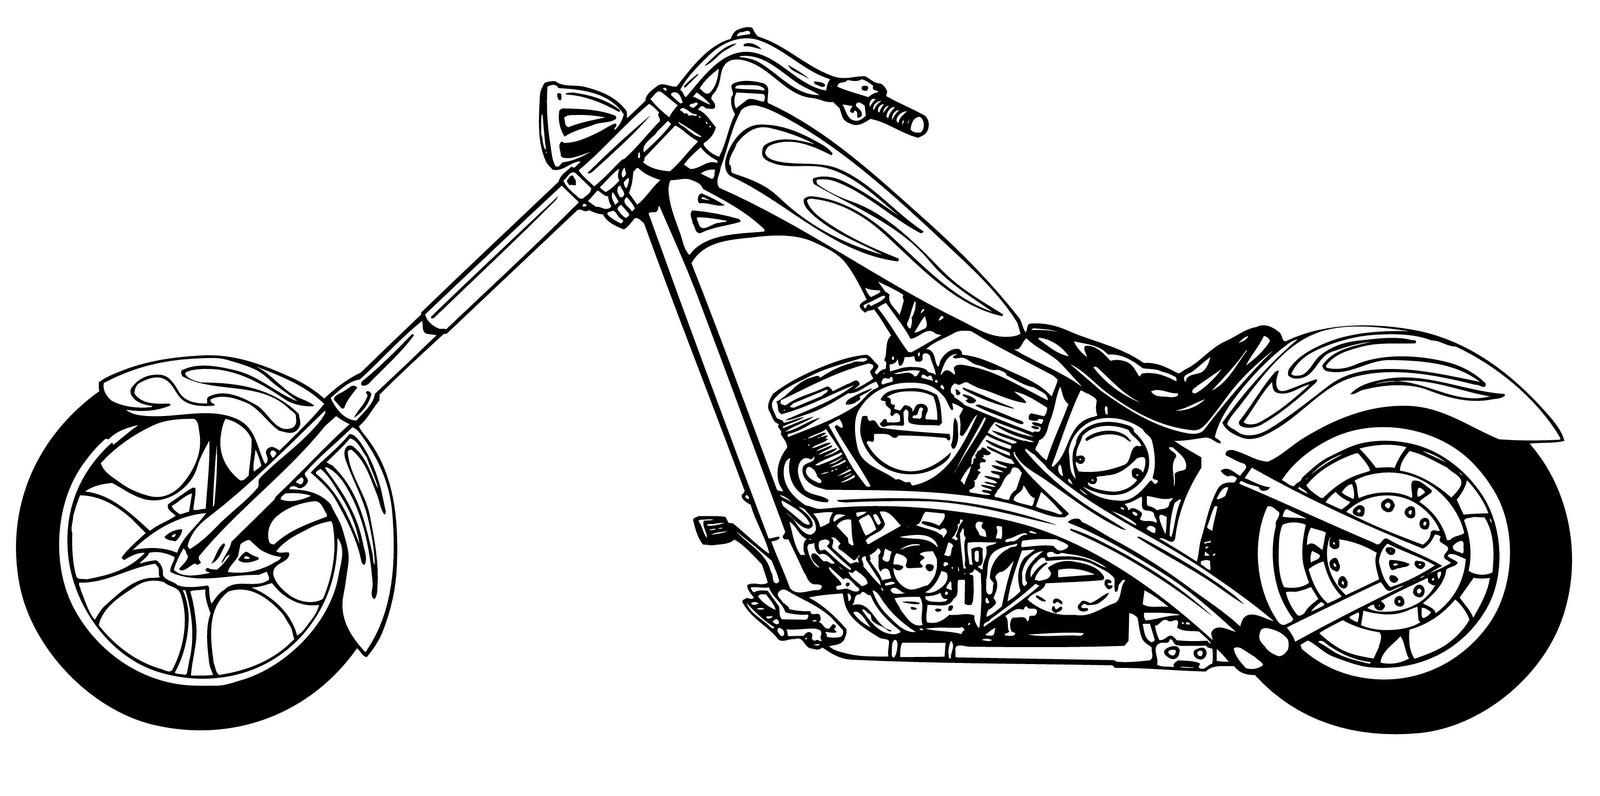 Harley davidson clipart black and white. Motorcycle clipartix